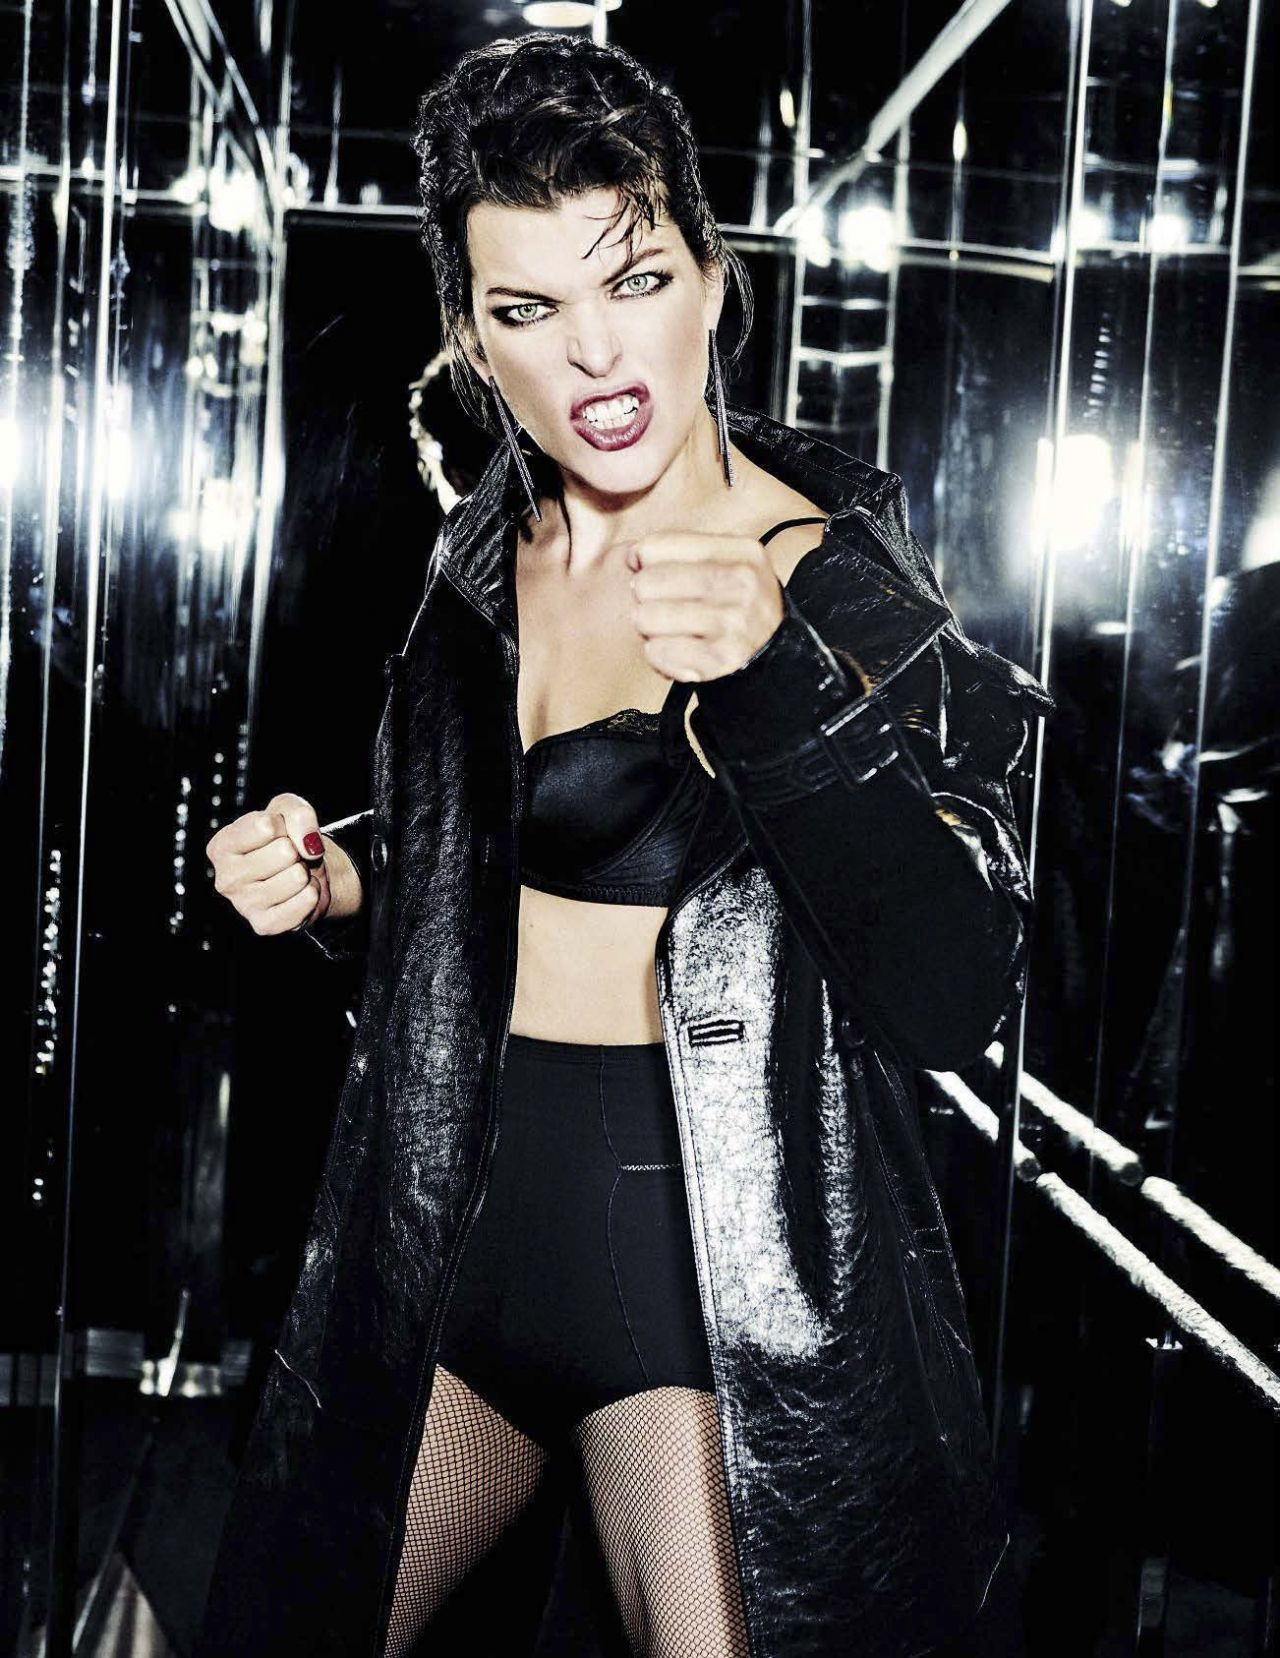 Milla Jovovich Vanity Fair Italy December 2016 Photos